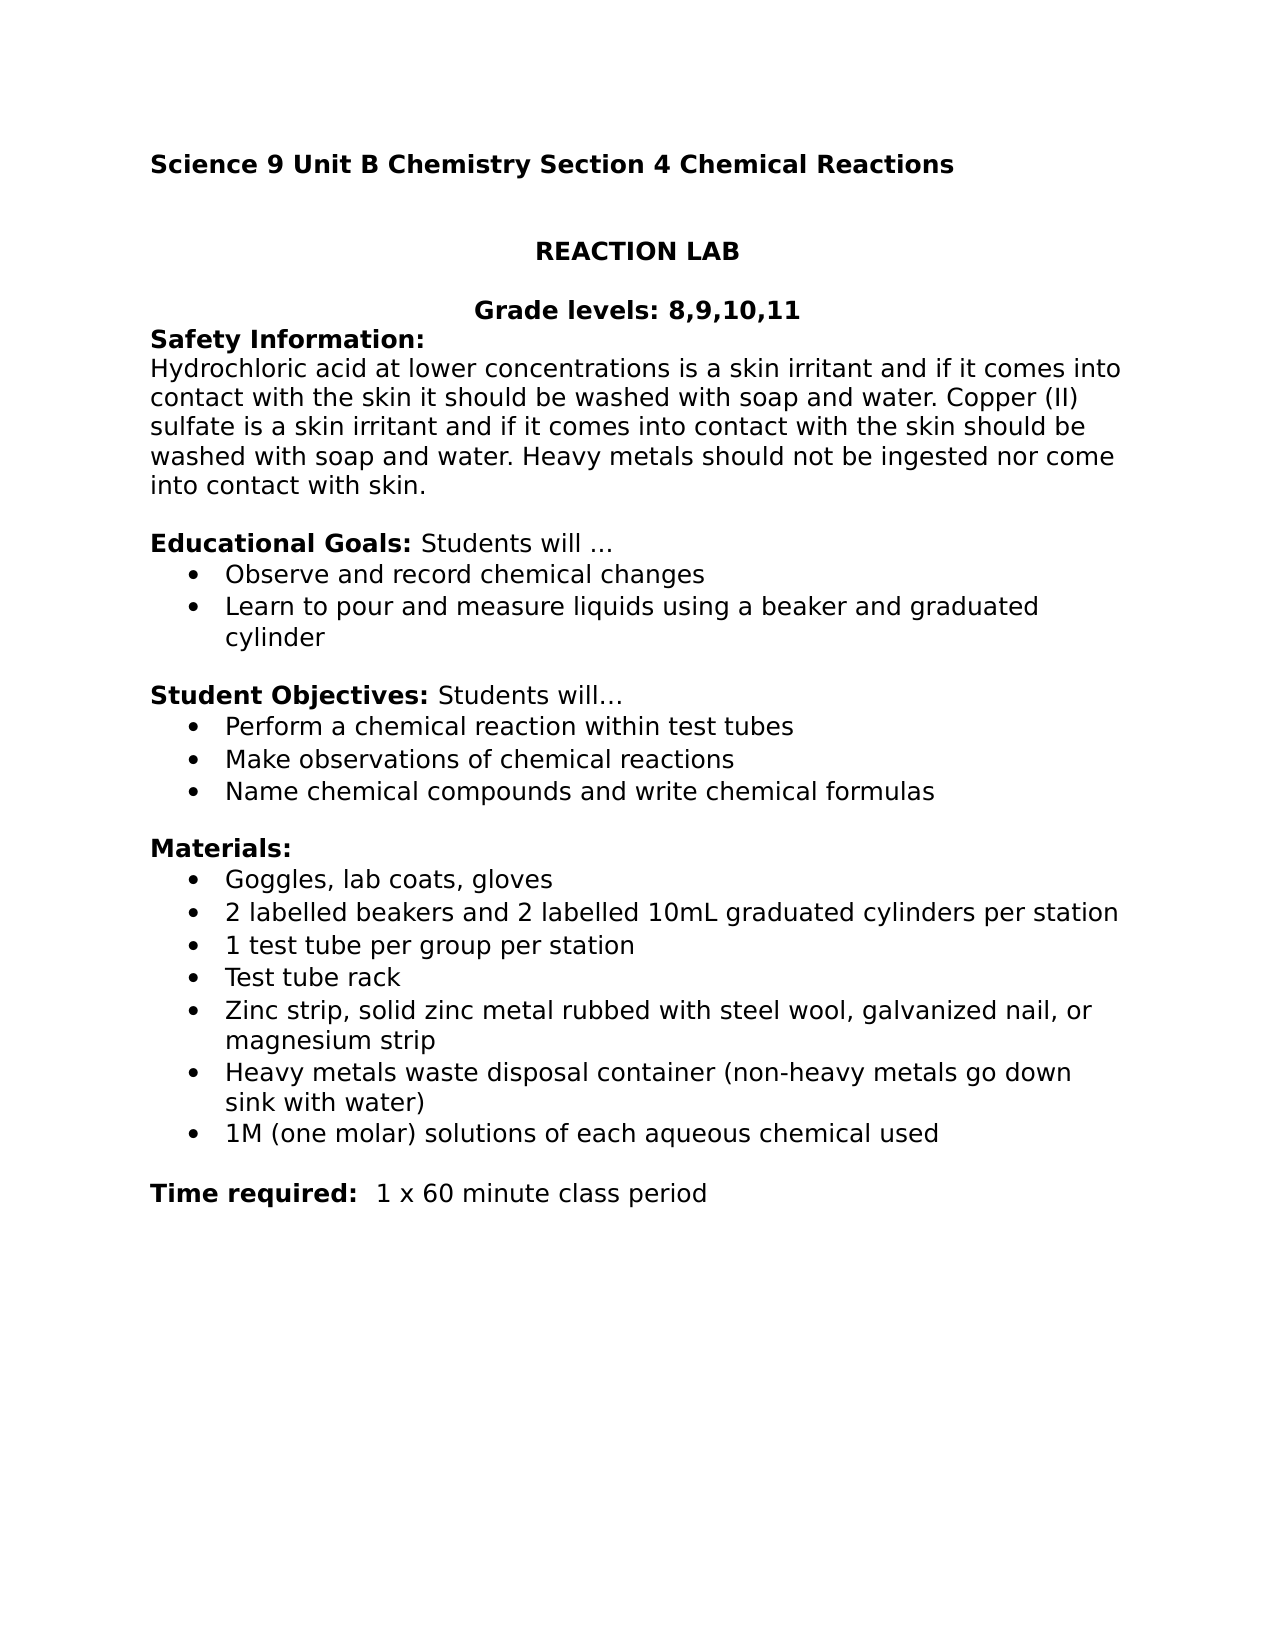 hight resolution of Science Observing Chemical Reactions High School Lab Resource Preview    Education elementary math